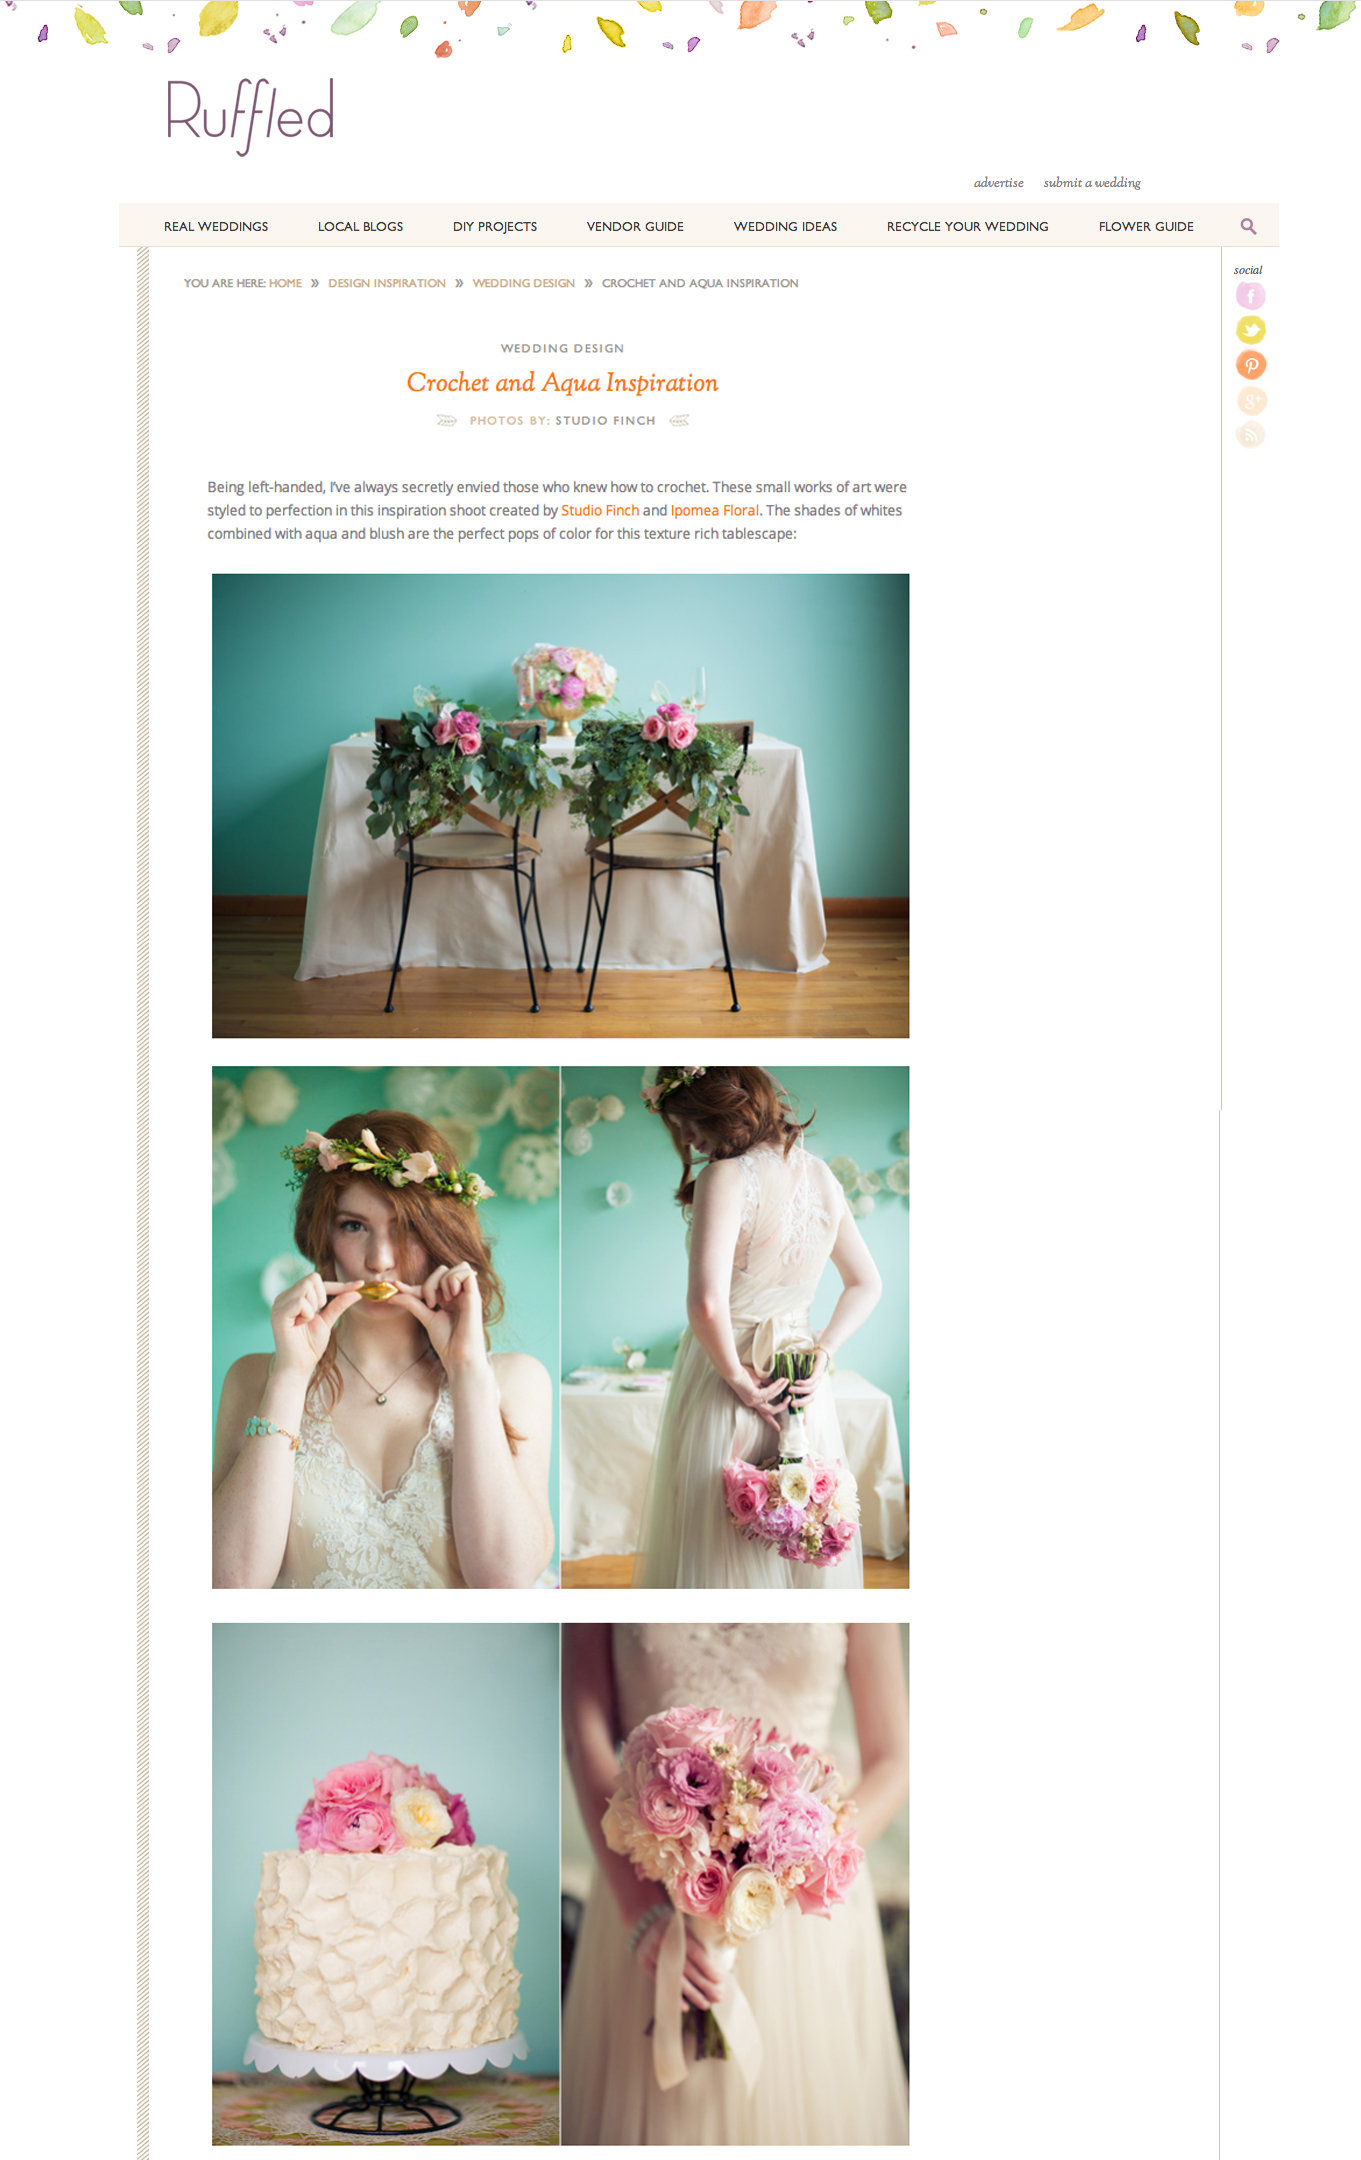 chicago wedding photographer feature ruffled blog Featured: Ruffled Blog